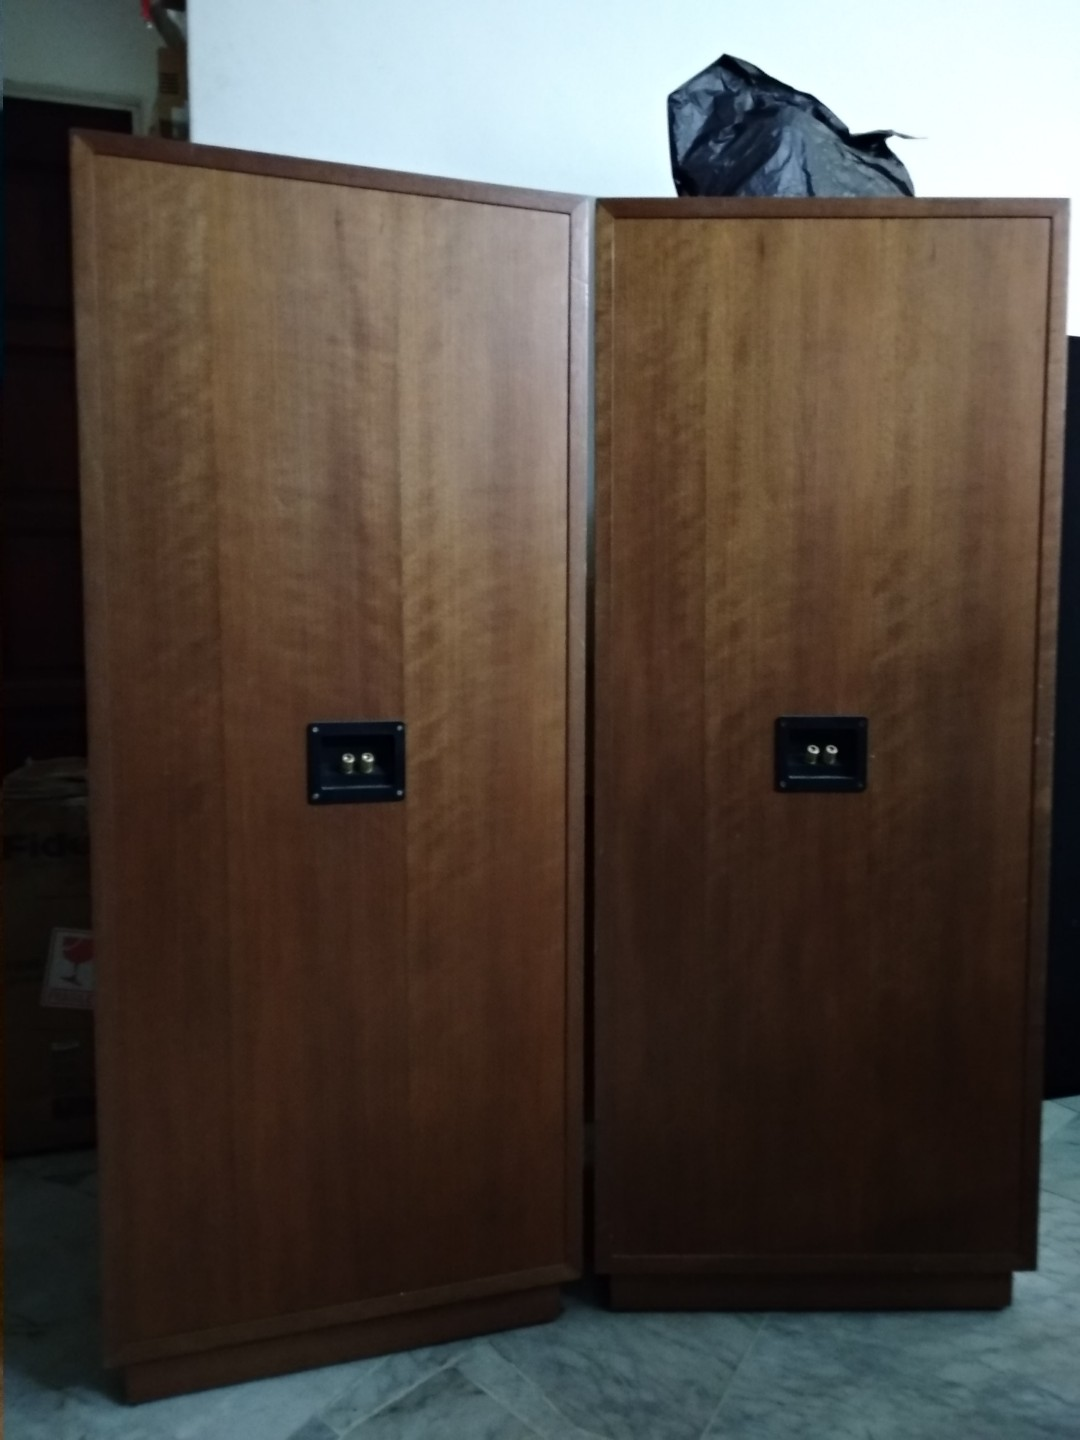 Altec Lansing 12 Inch Single Point Source Full Range Speakers Img